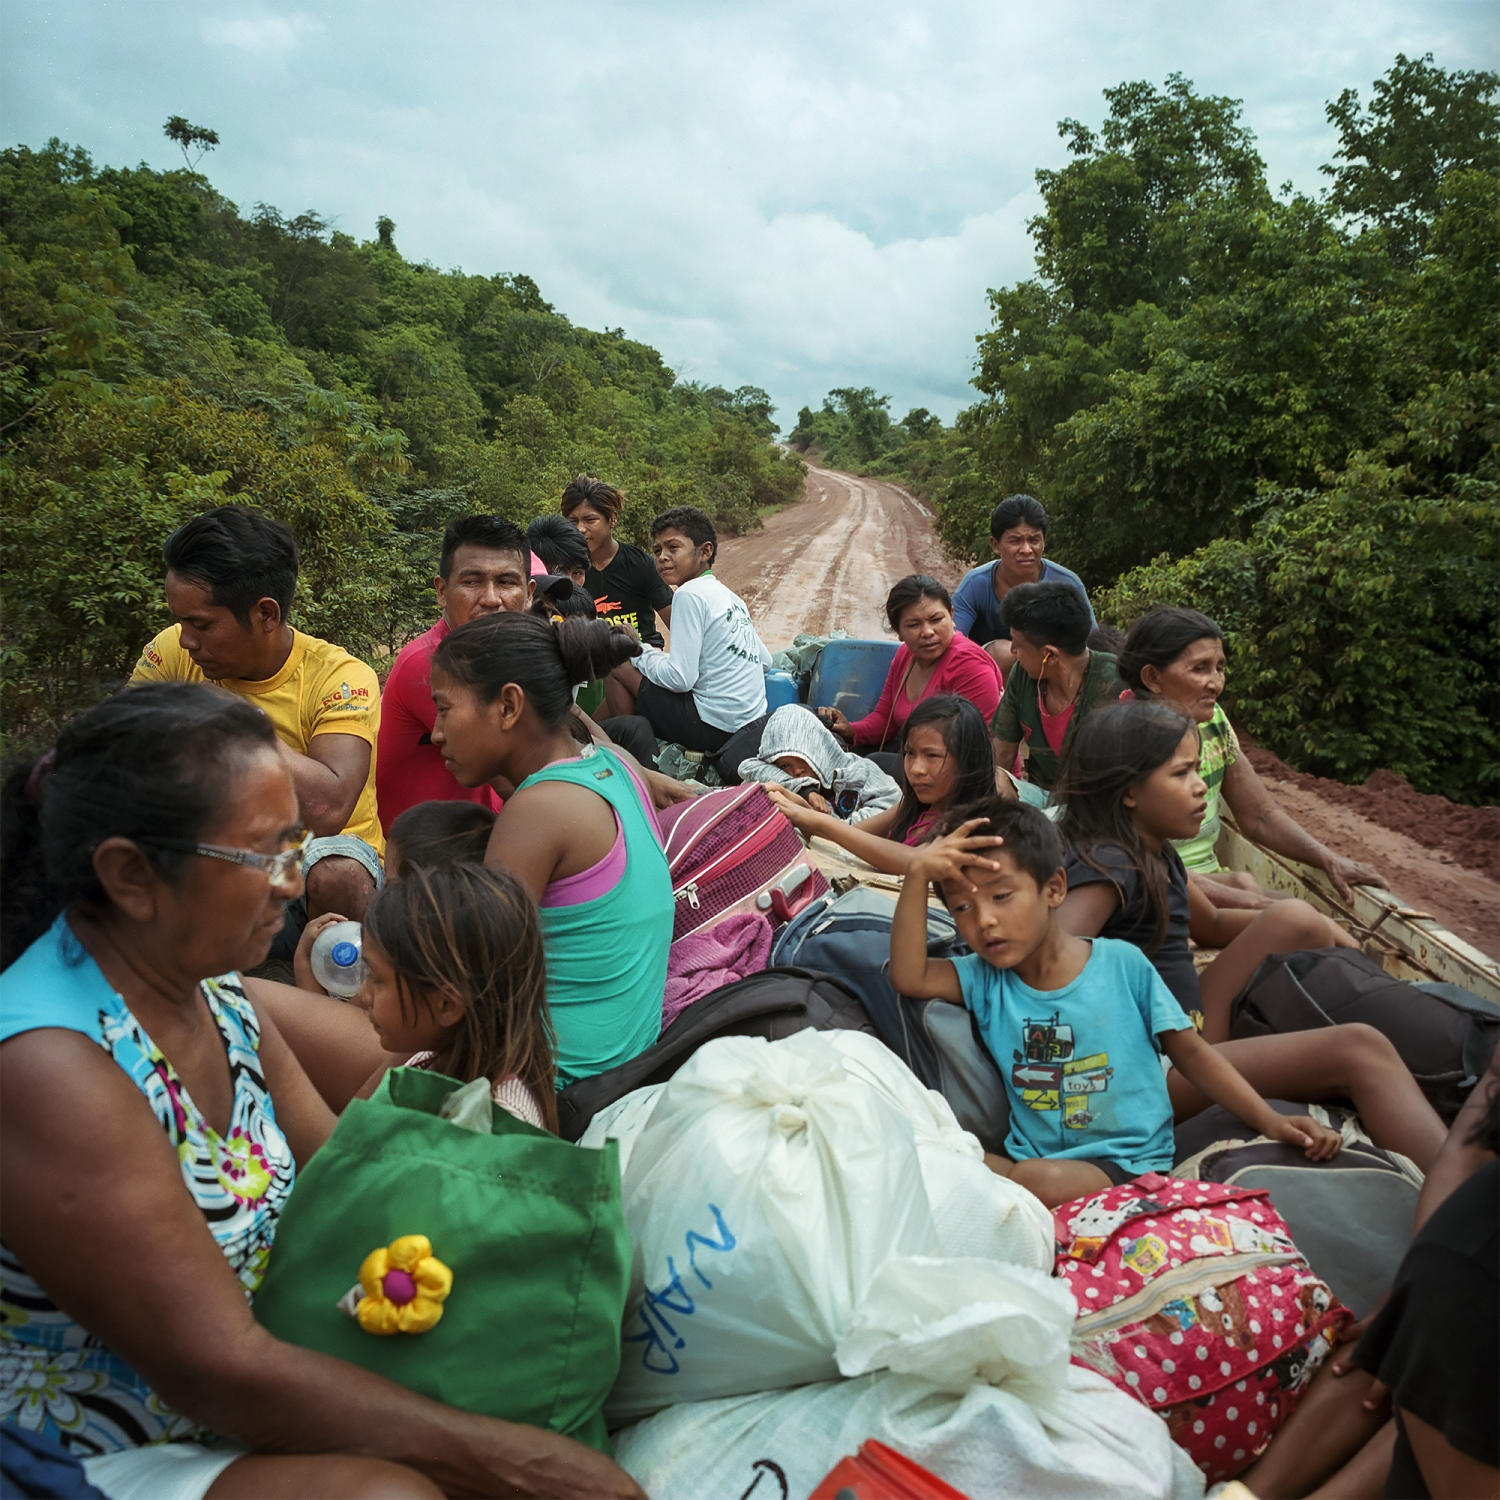 March 6, 2016.  Munduruku indigenous people ride in the back of a truck on the Transamazon hightway from the city of Itaituba to the port of Buburé as they return to their villages on the Tapajos River in Para State, Brazil.  The Munduruku are a tribe of 13000 people who live traditionally along the river and depend on fishing and the river system for their livelihood.  /Aaron Vincent Elkaim